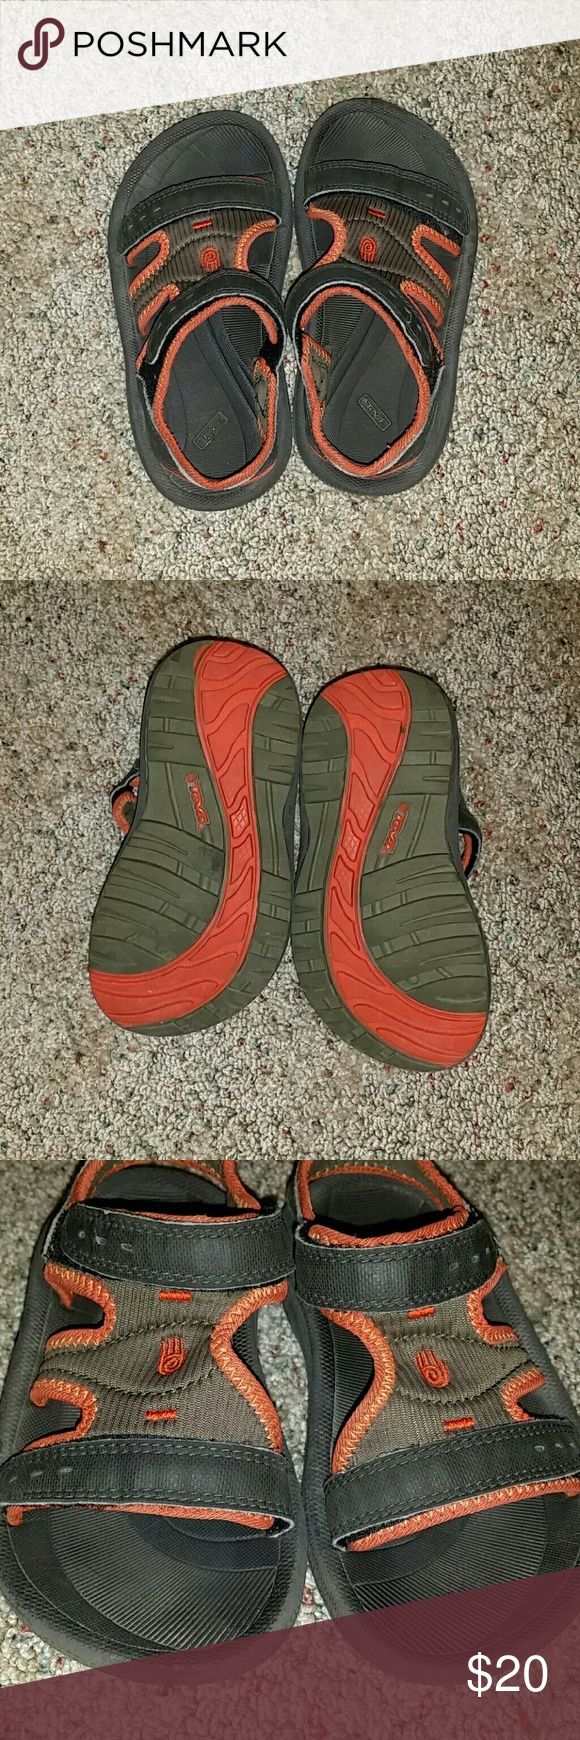 Teva Kids Sandles In excellent used condition!  Tons of lofe left. Can be for a boy or girl. Super comfy and easy to put on. Teva Shoes Sandals & Flip Flops